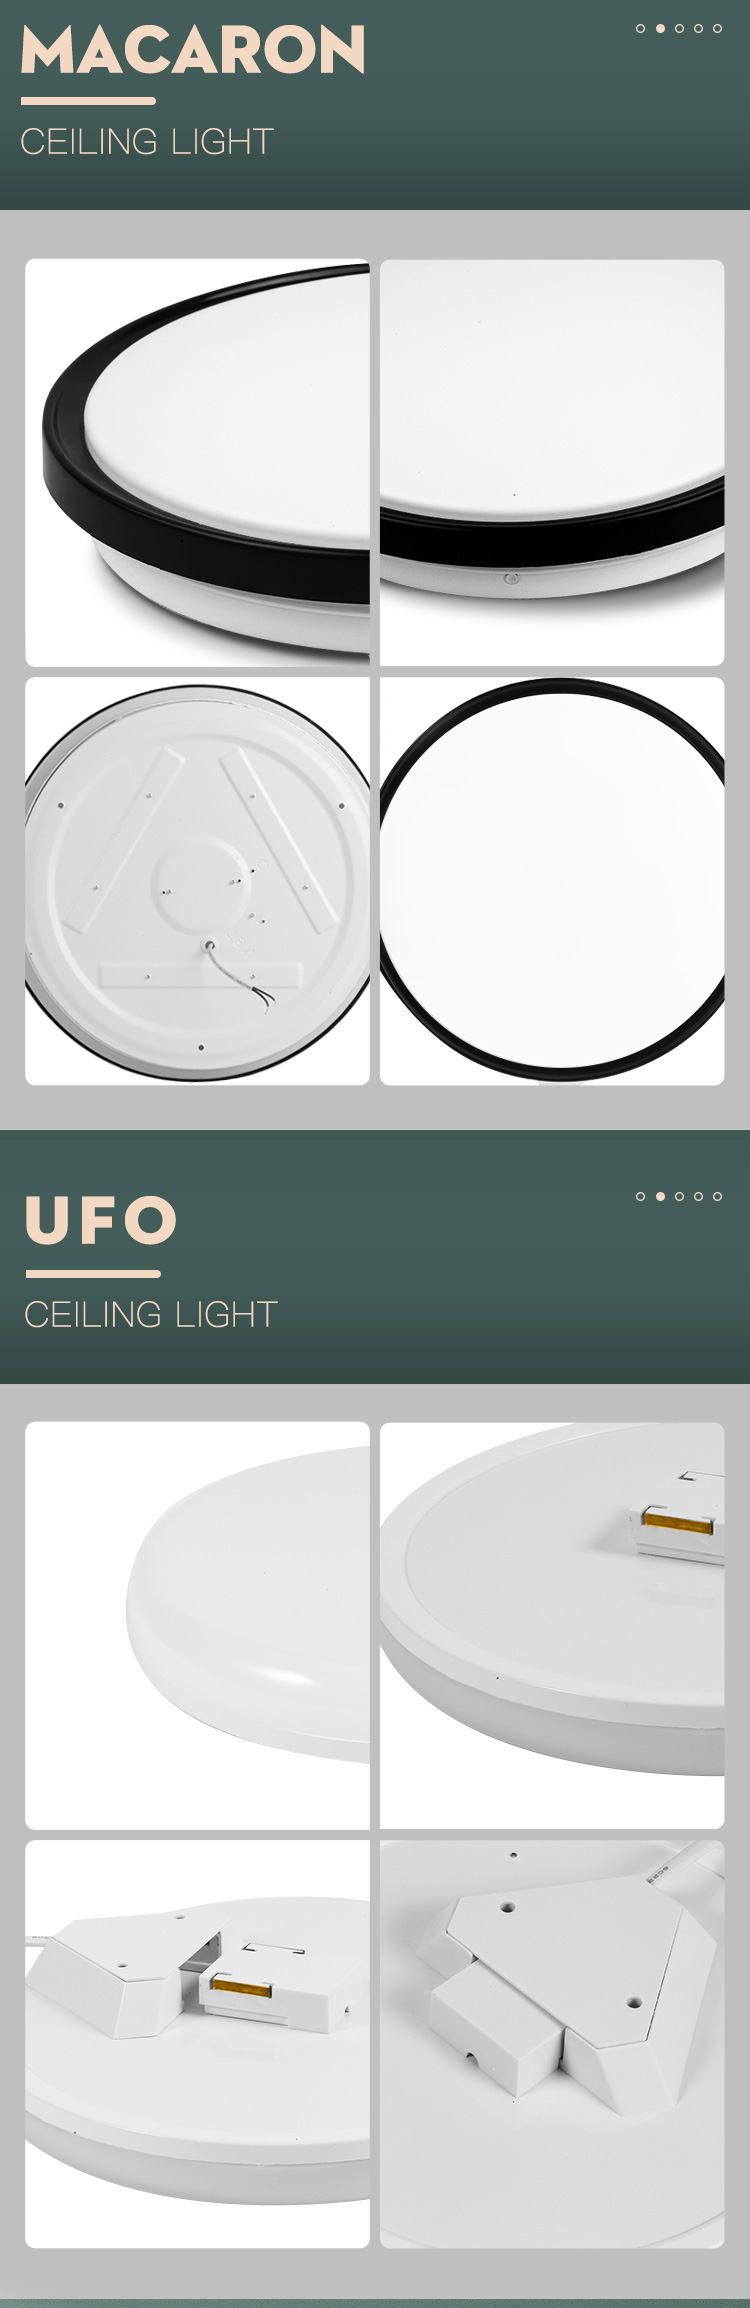 H53b056f84021442b9d1c5807d26263daO Led Ceiling Lights Modern LED Ceiling Lamp Light 220V 15W 20W 30W 50W Cold Warm White  Lighting Surface Mounted For Home Kitchen